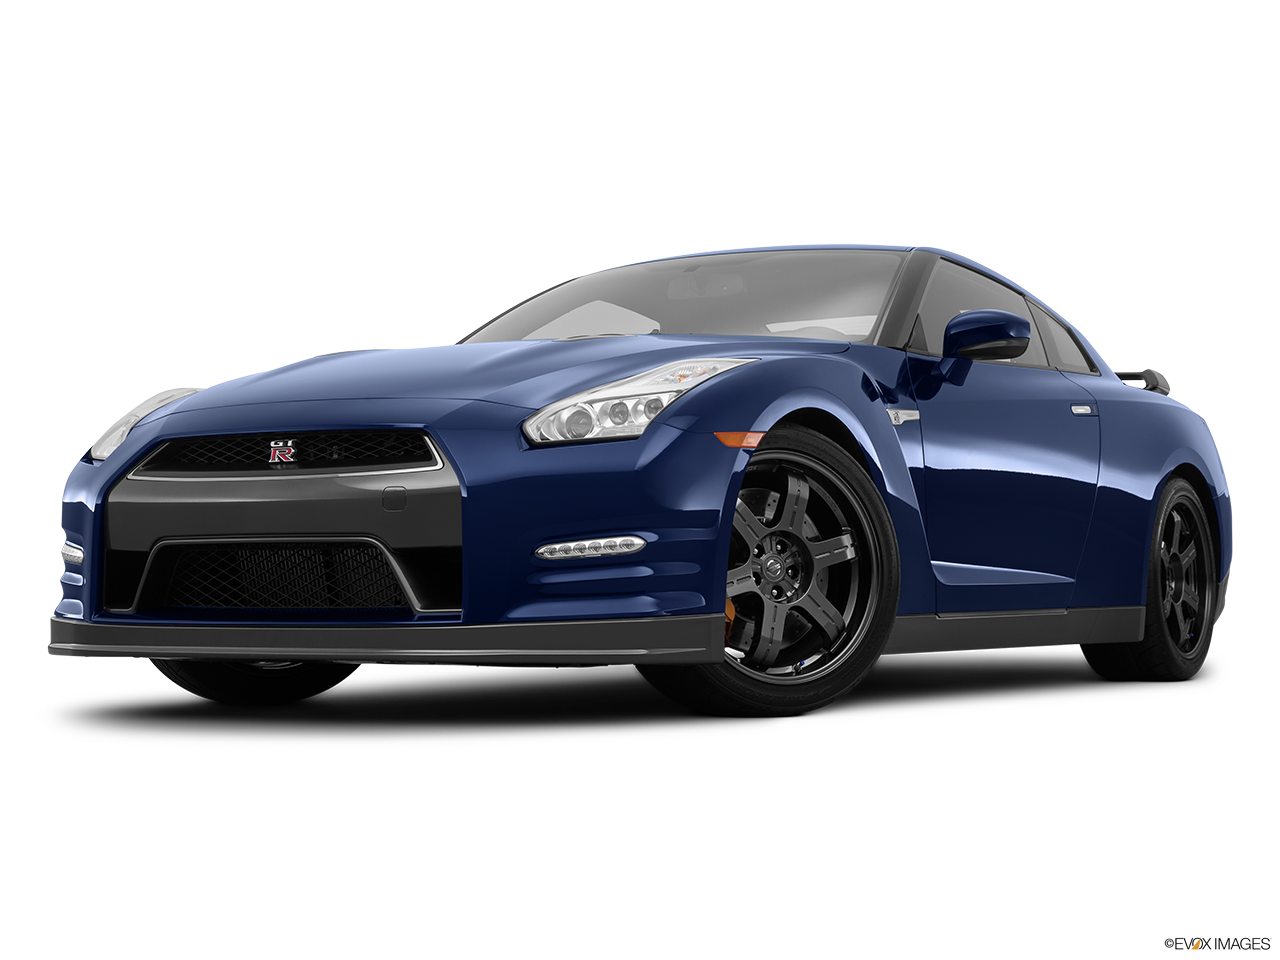 2015 Nissan Gt R The Sports Car In Alabama Jack Ingram 9592 St1280 090